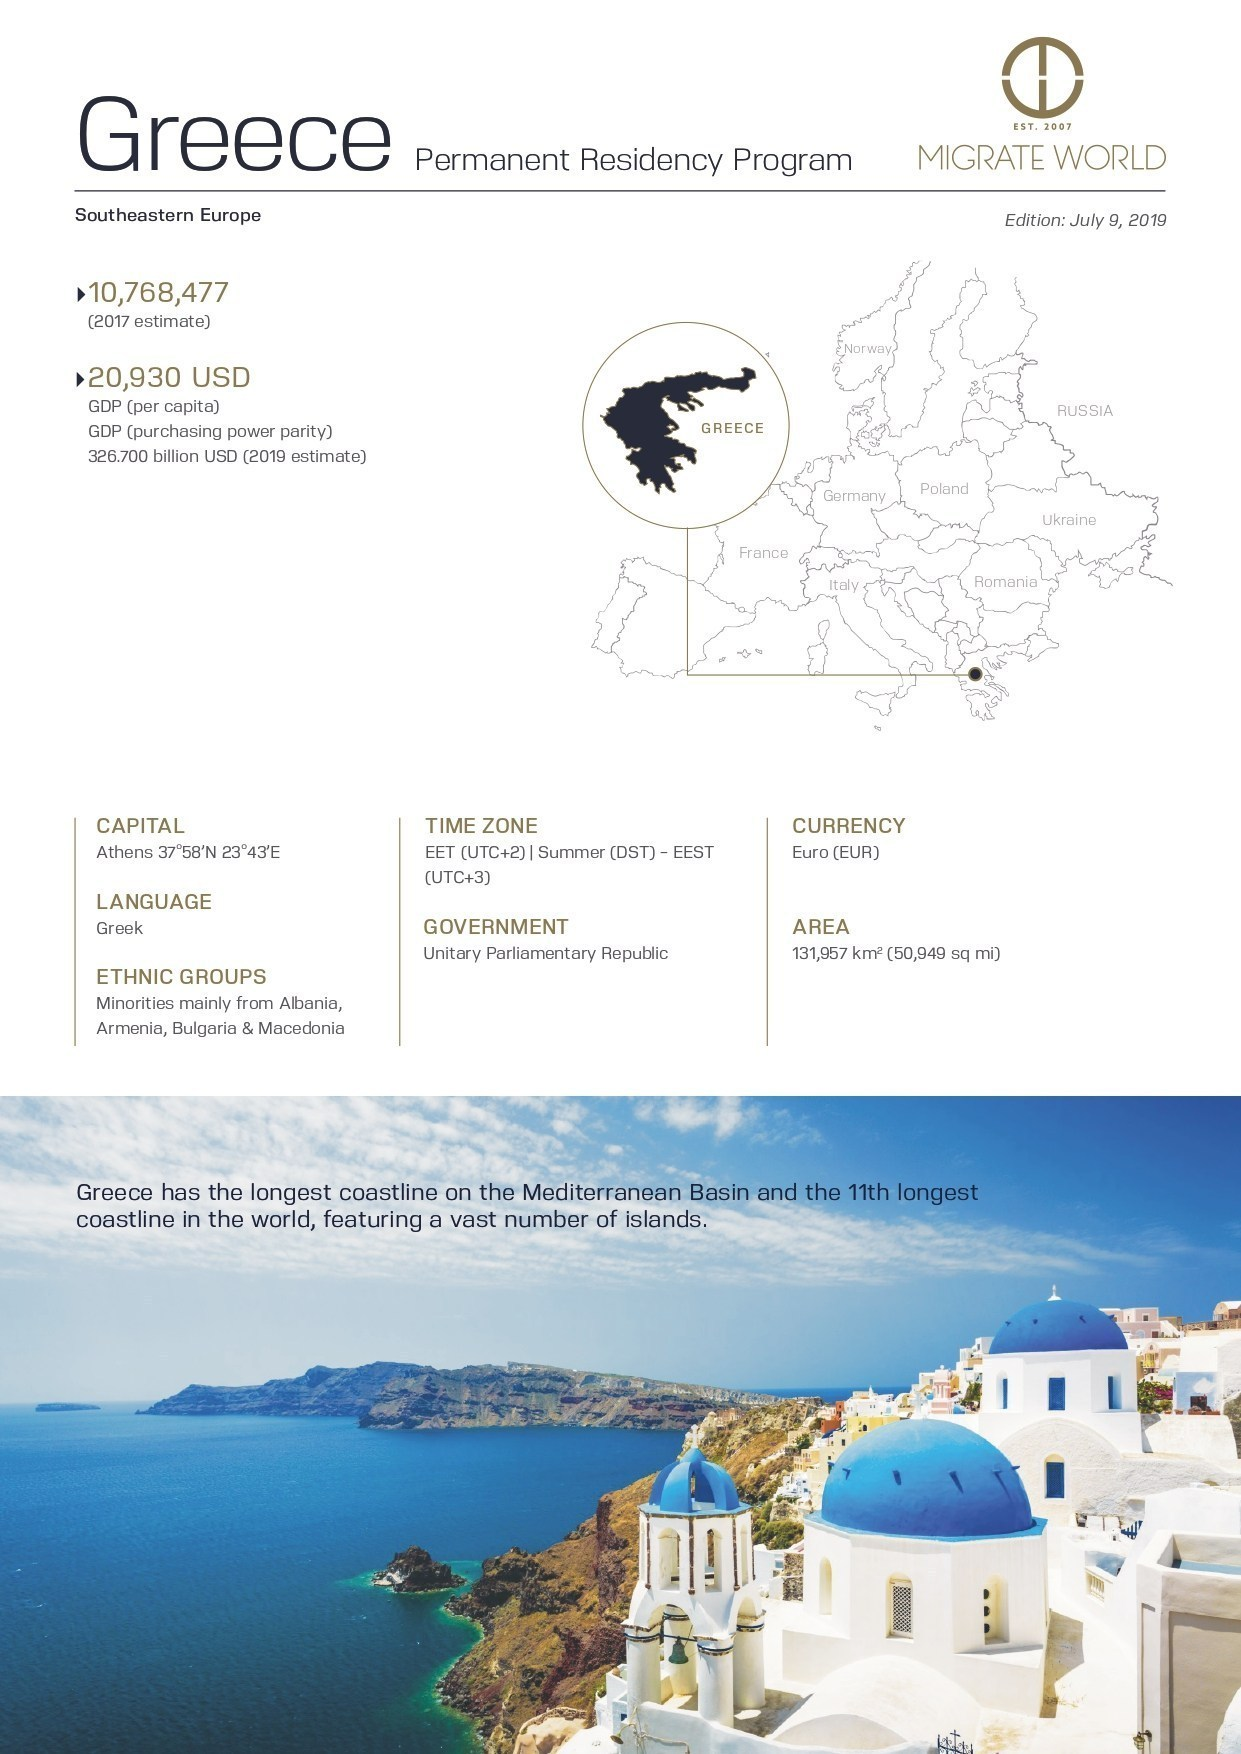 Greece Program Brochure